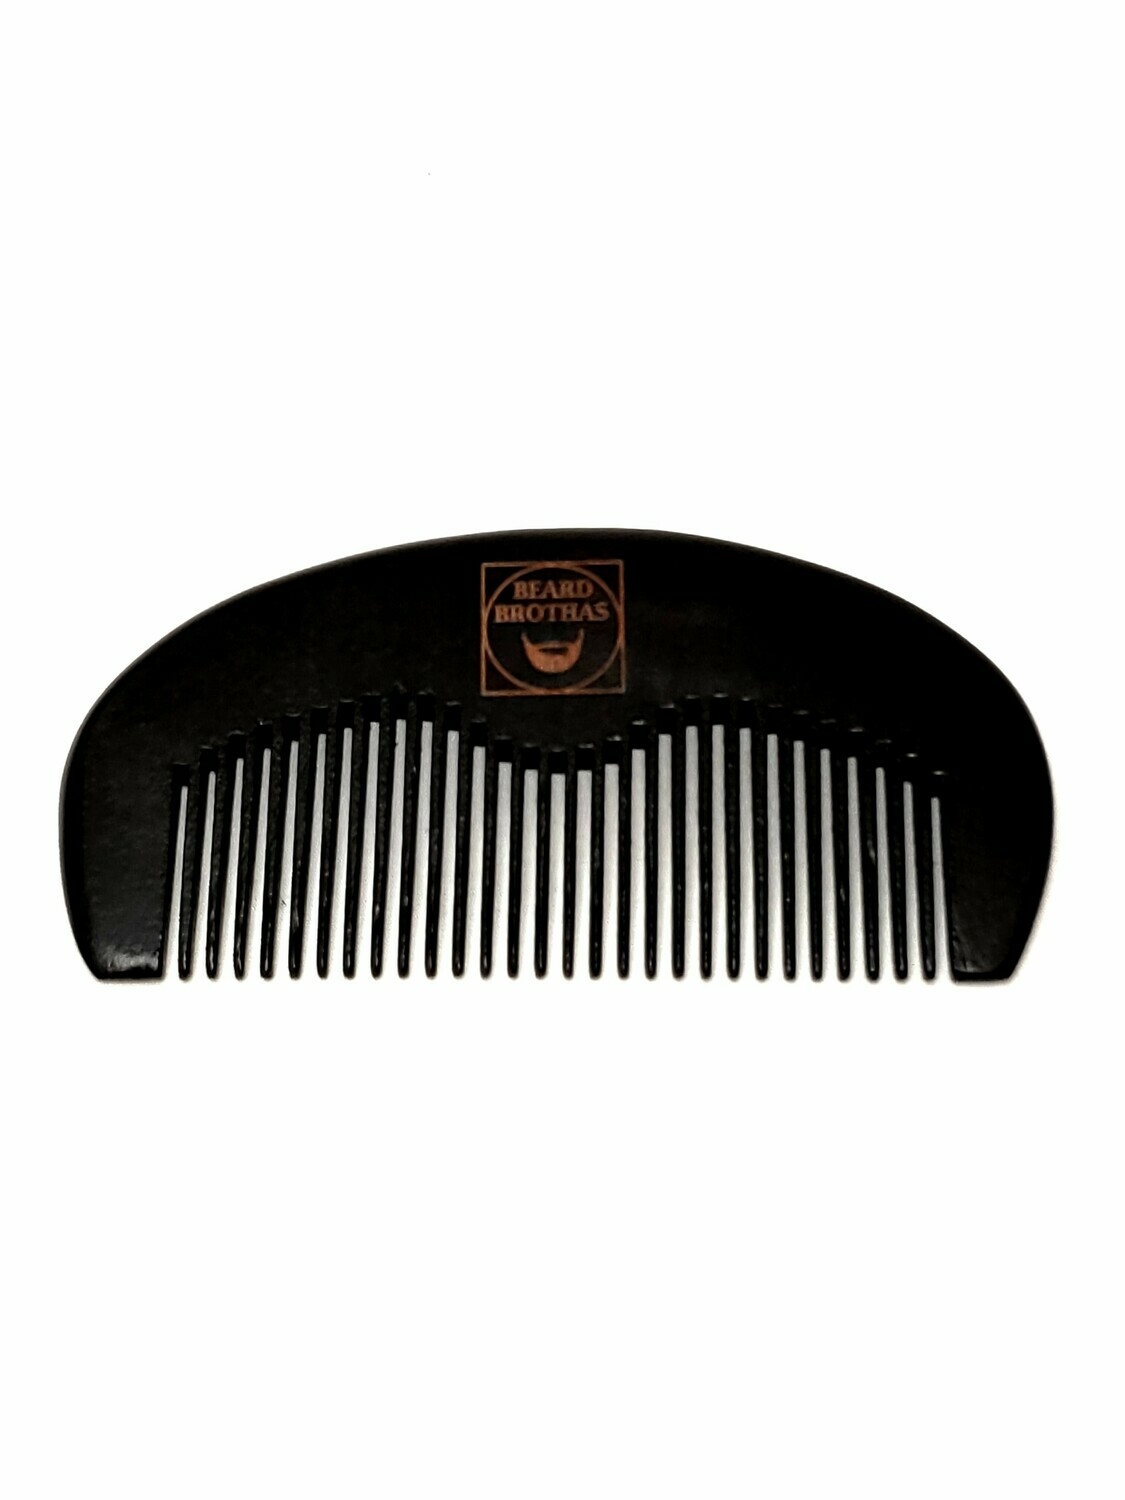 Beard Brothas Peach Wood Beard Comb